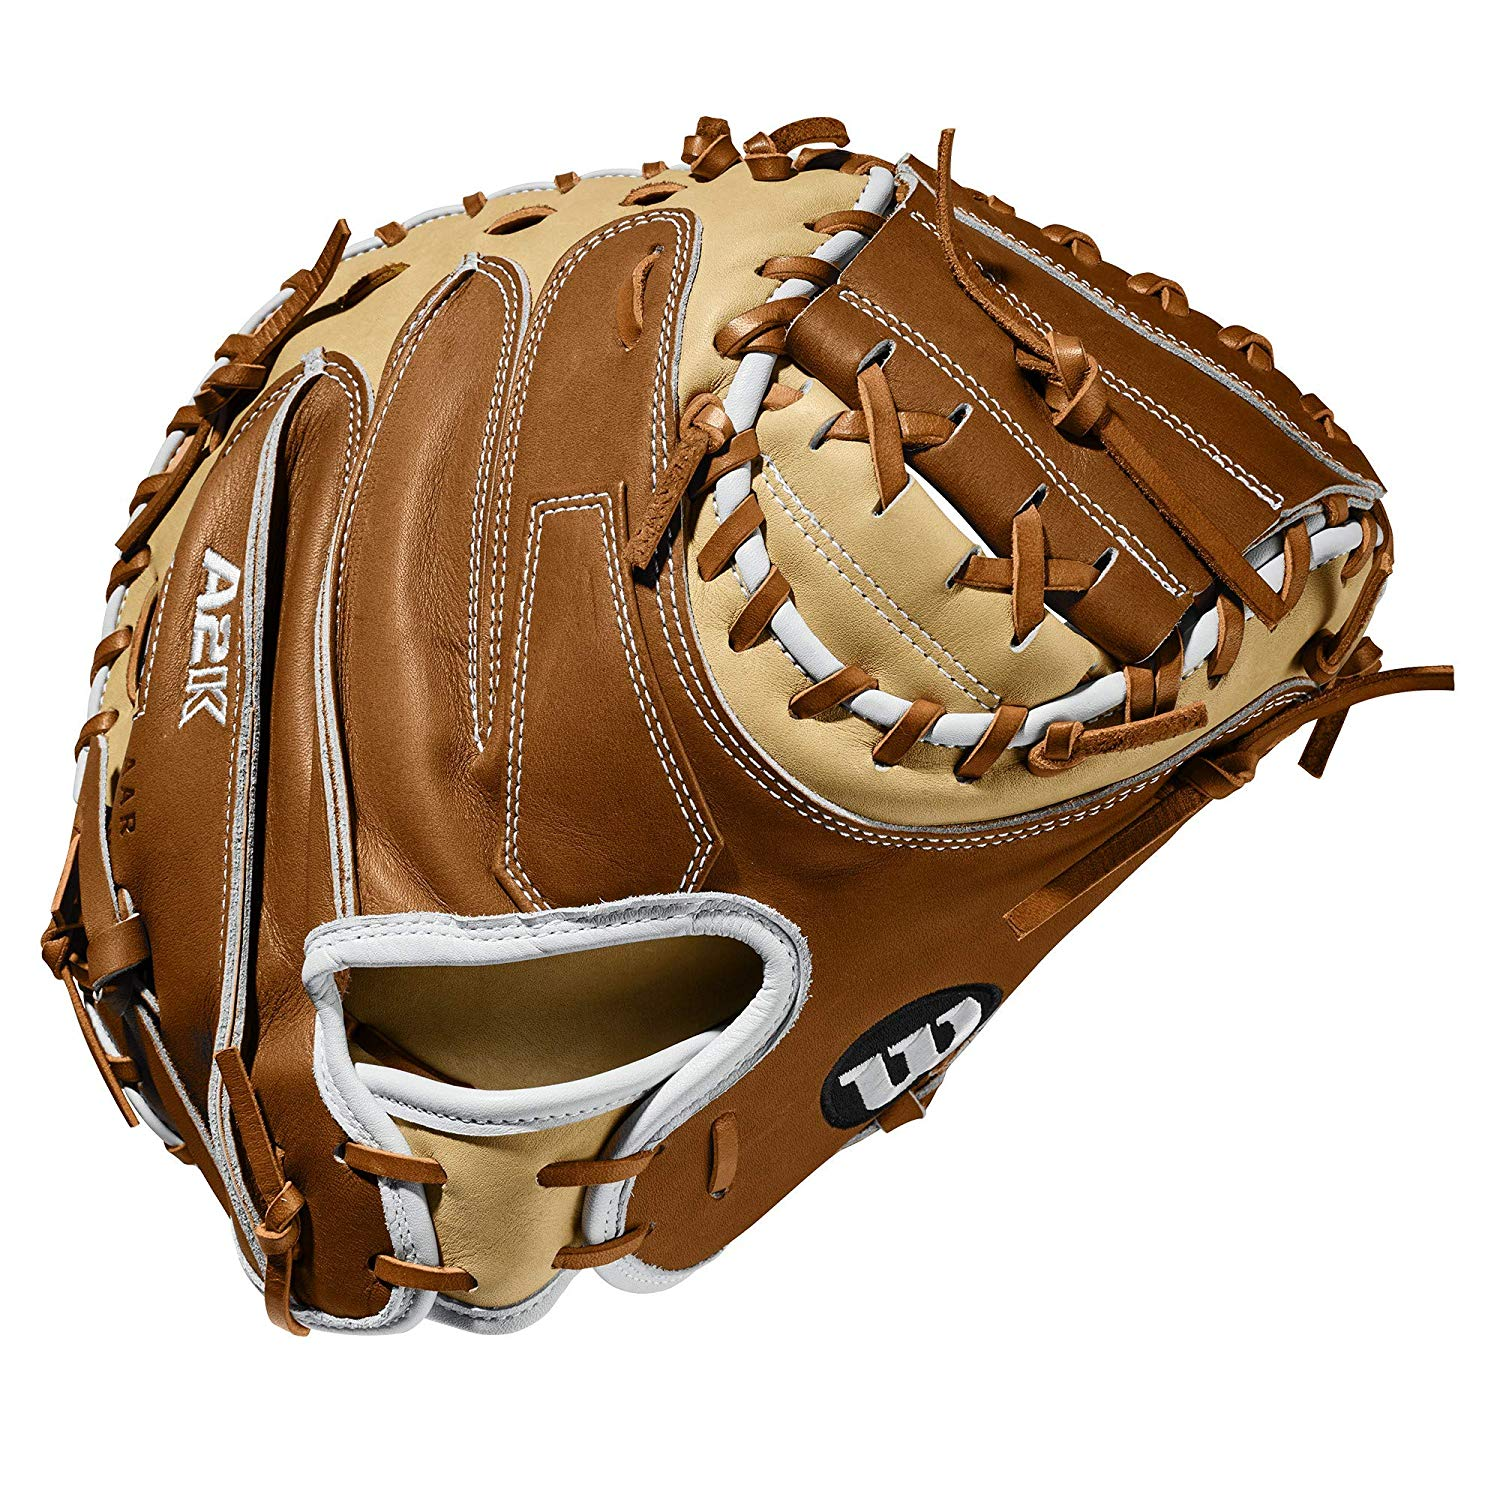 wilson-a2k-catchers-mitt-m1-33-5-right-hand-throw WTA2KRB20M1-RightHandThrow  887768815288 Half Moon Web and three times more shaping to help reduce